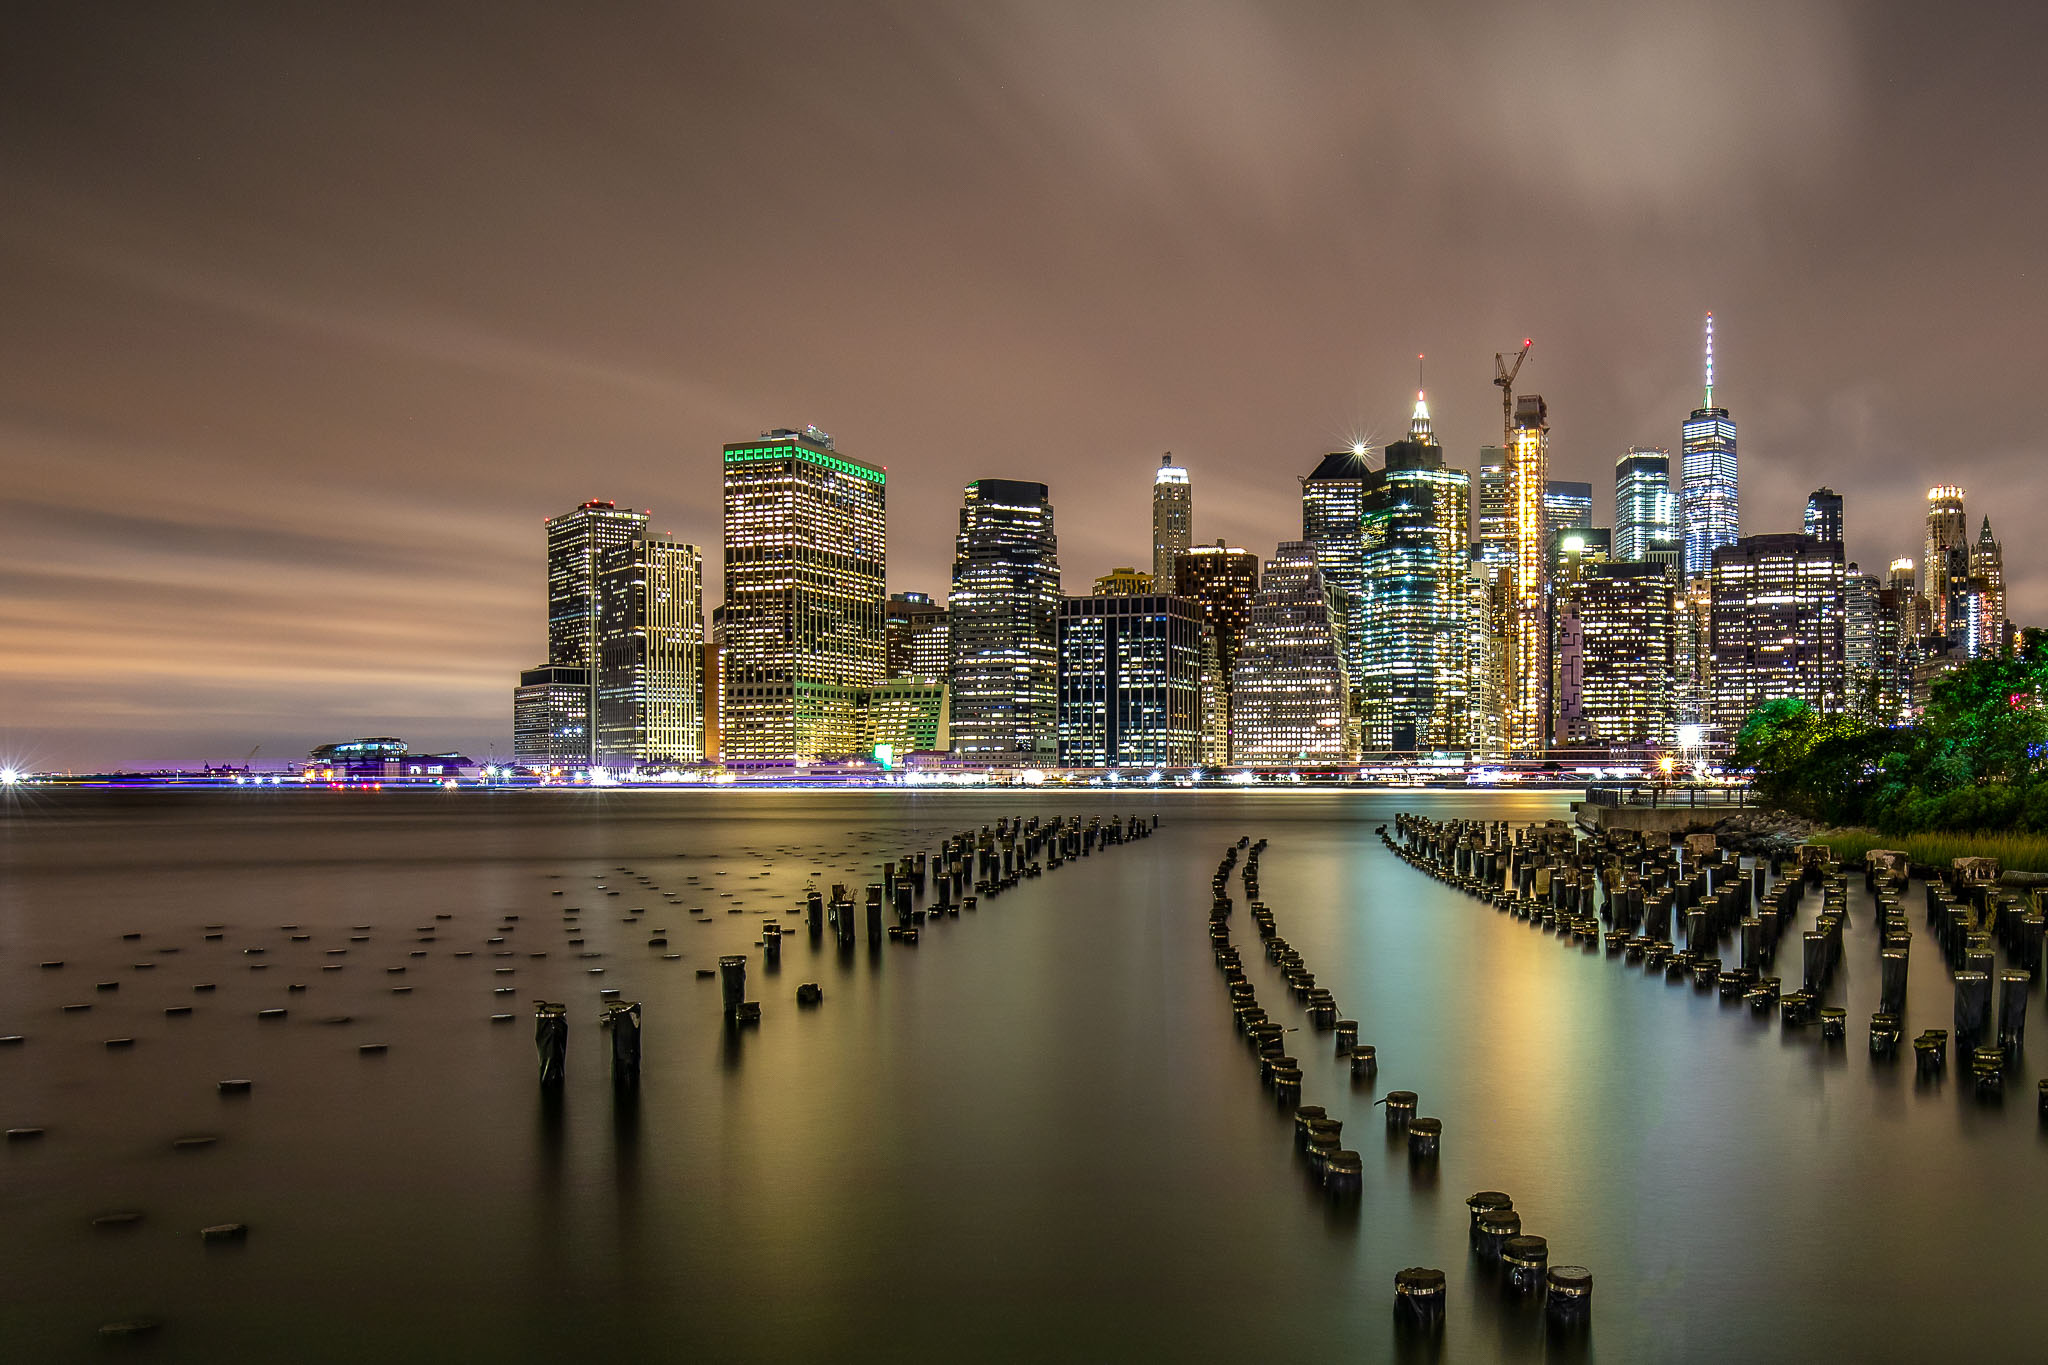 Brooklyn Pier 1 at night